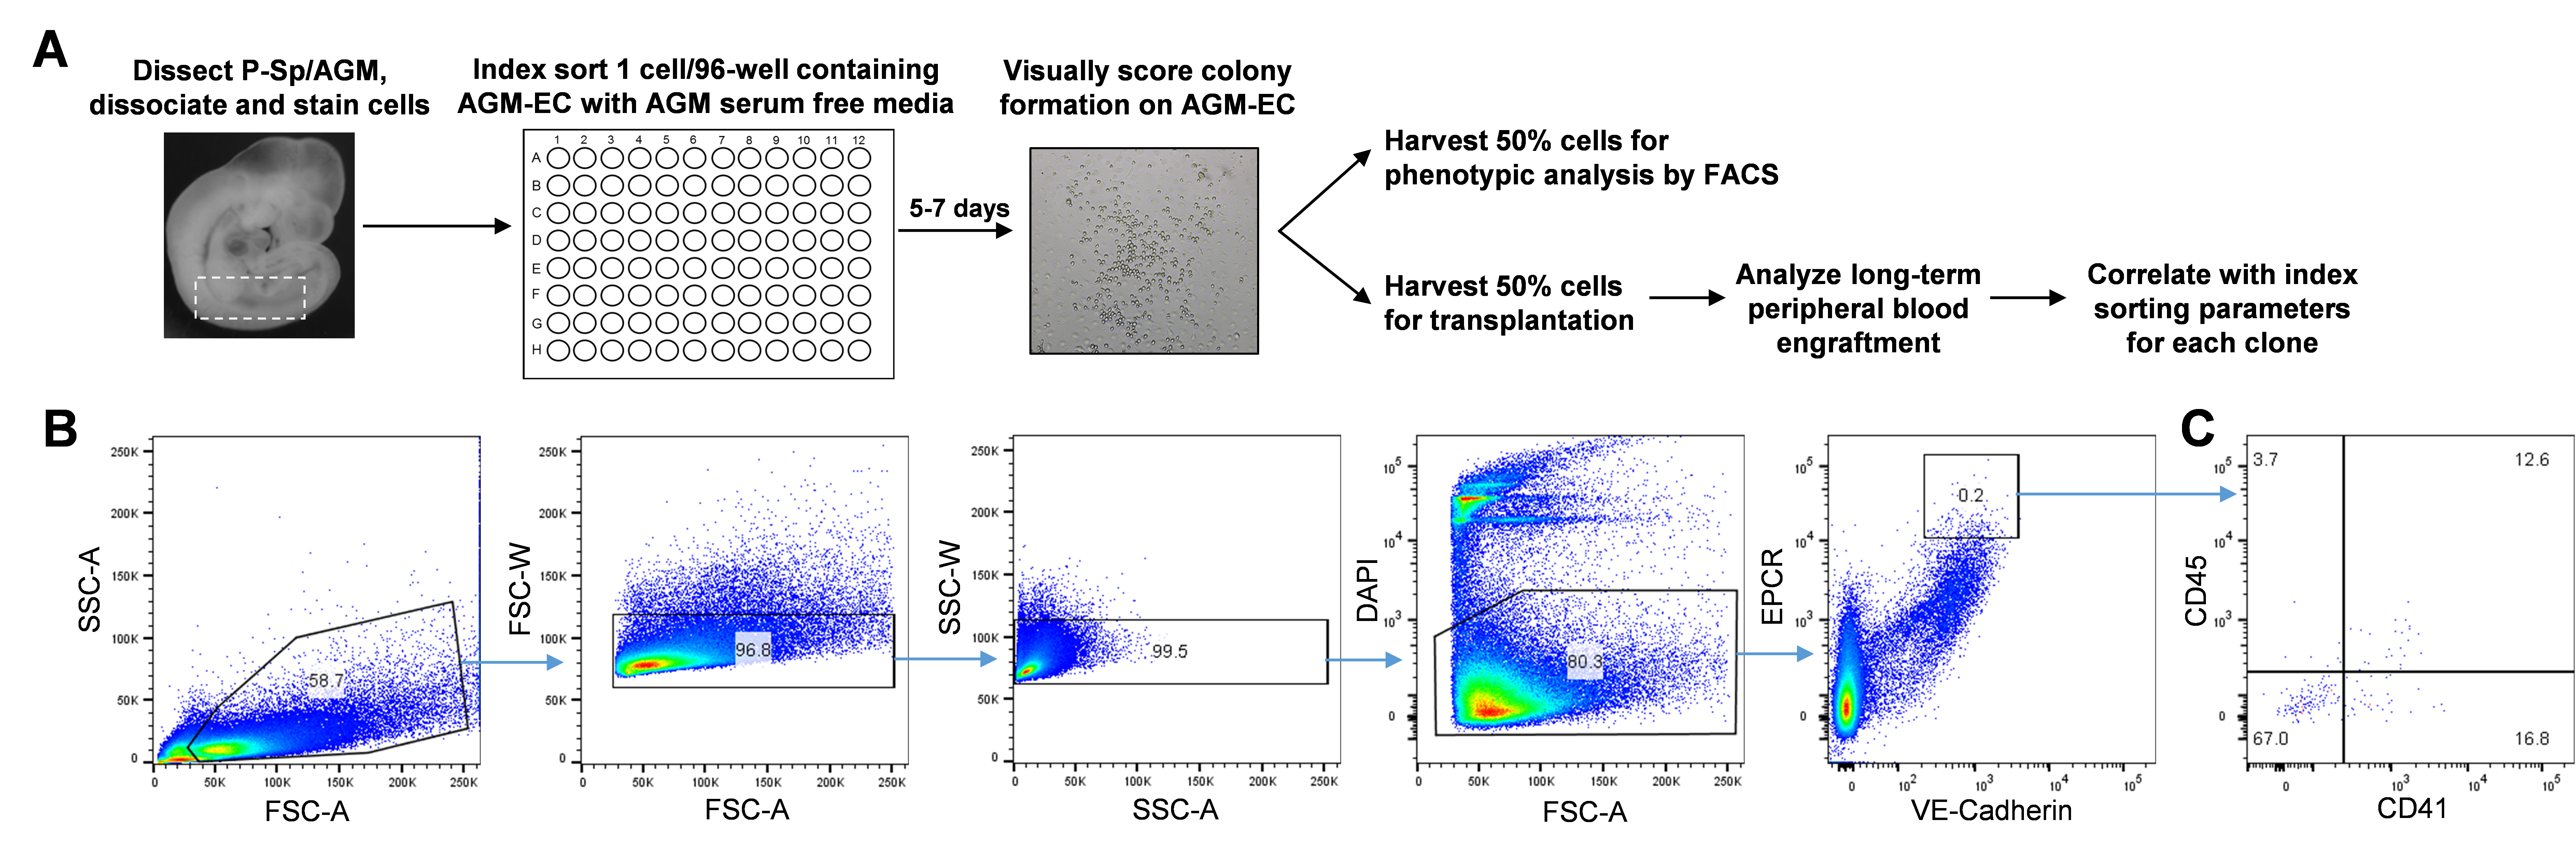 Clonal Analysis Of Embryonic Hematopoietic Stem Cell Precursors